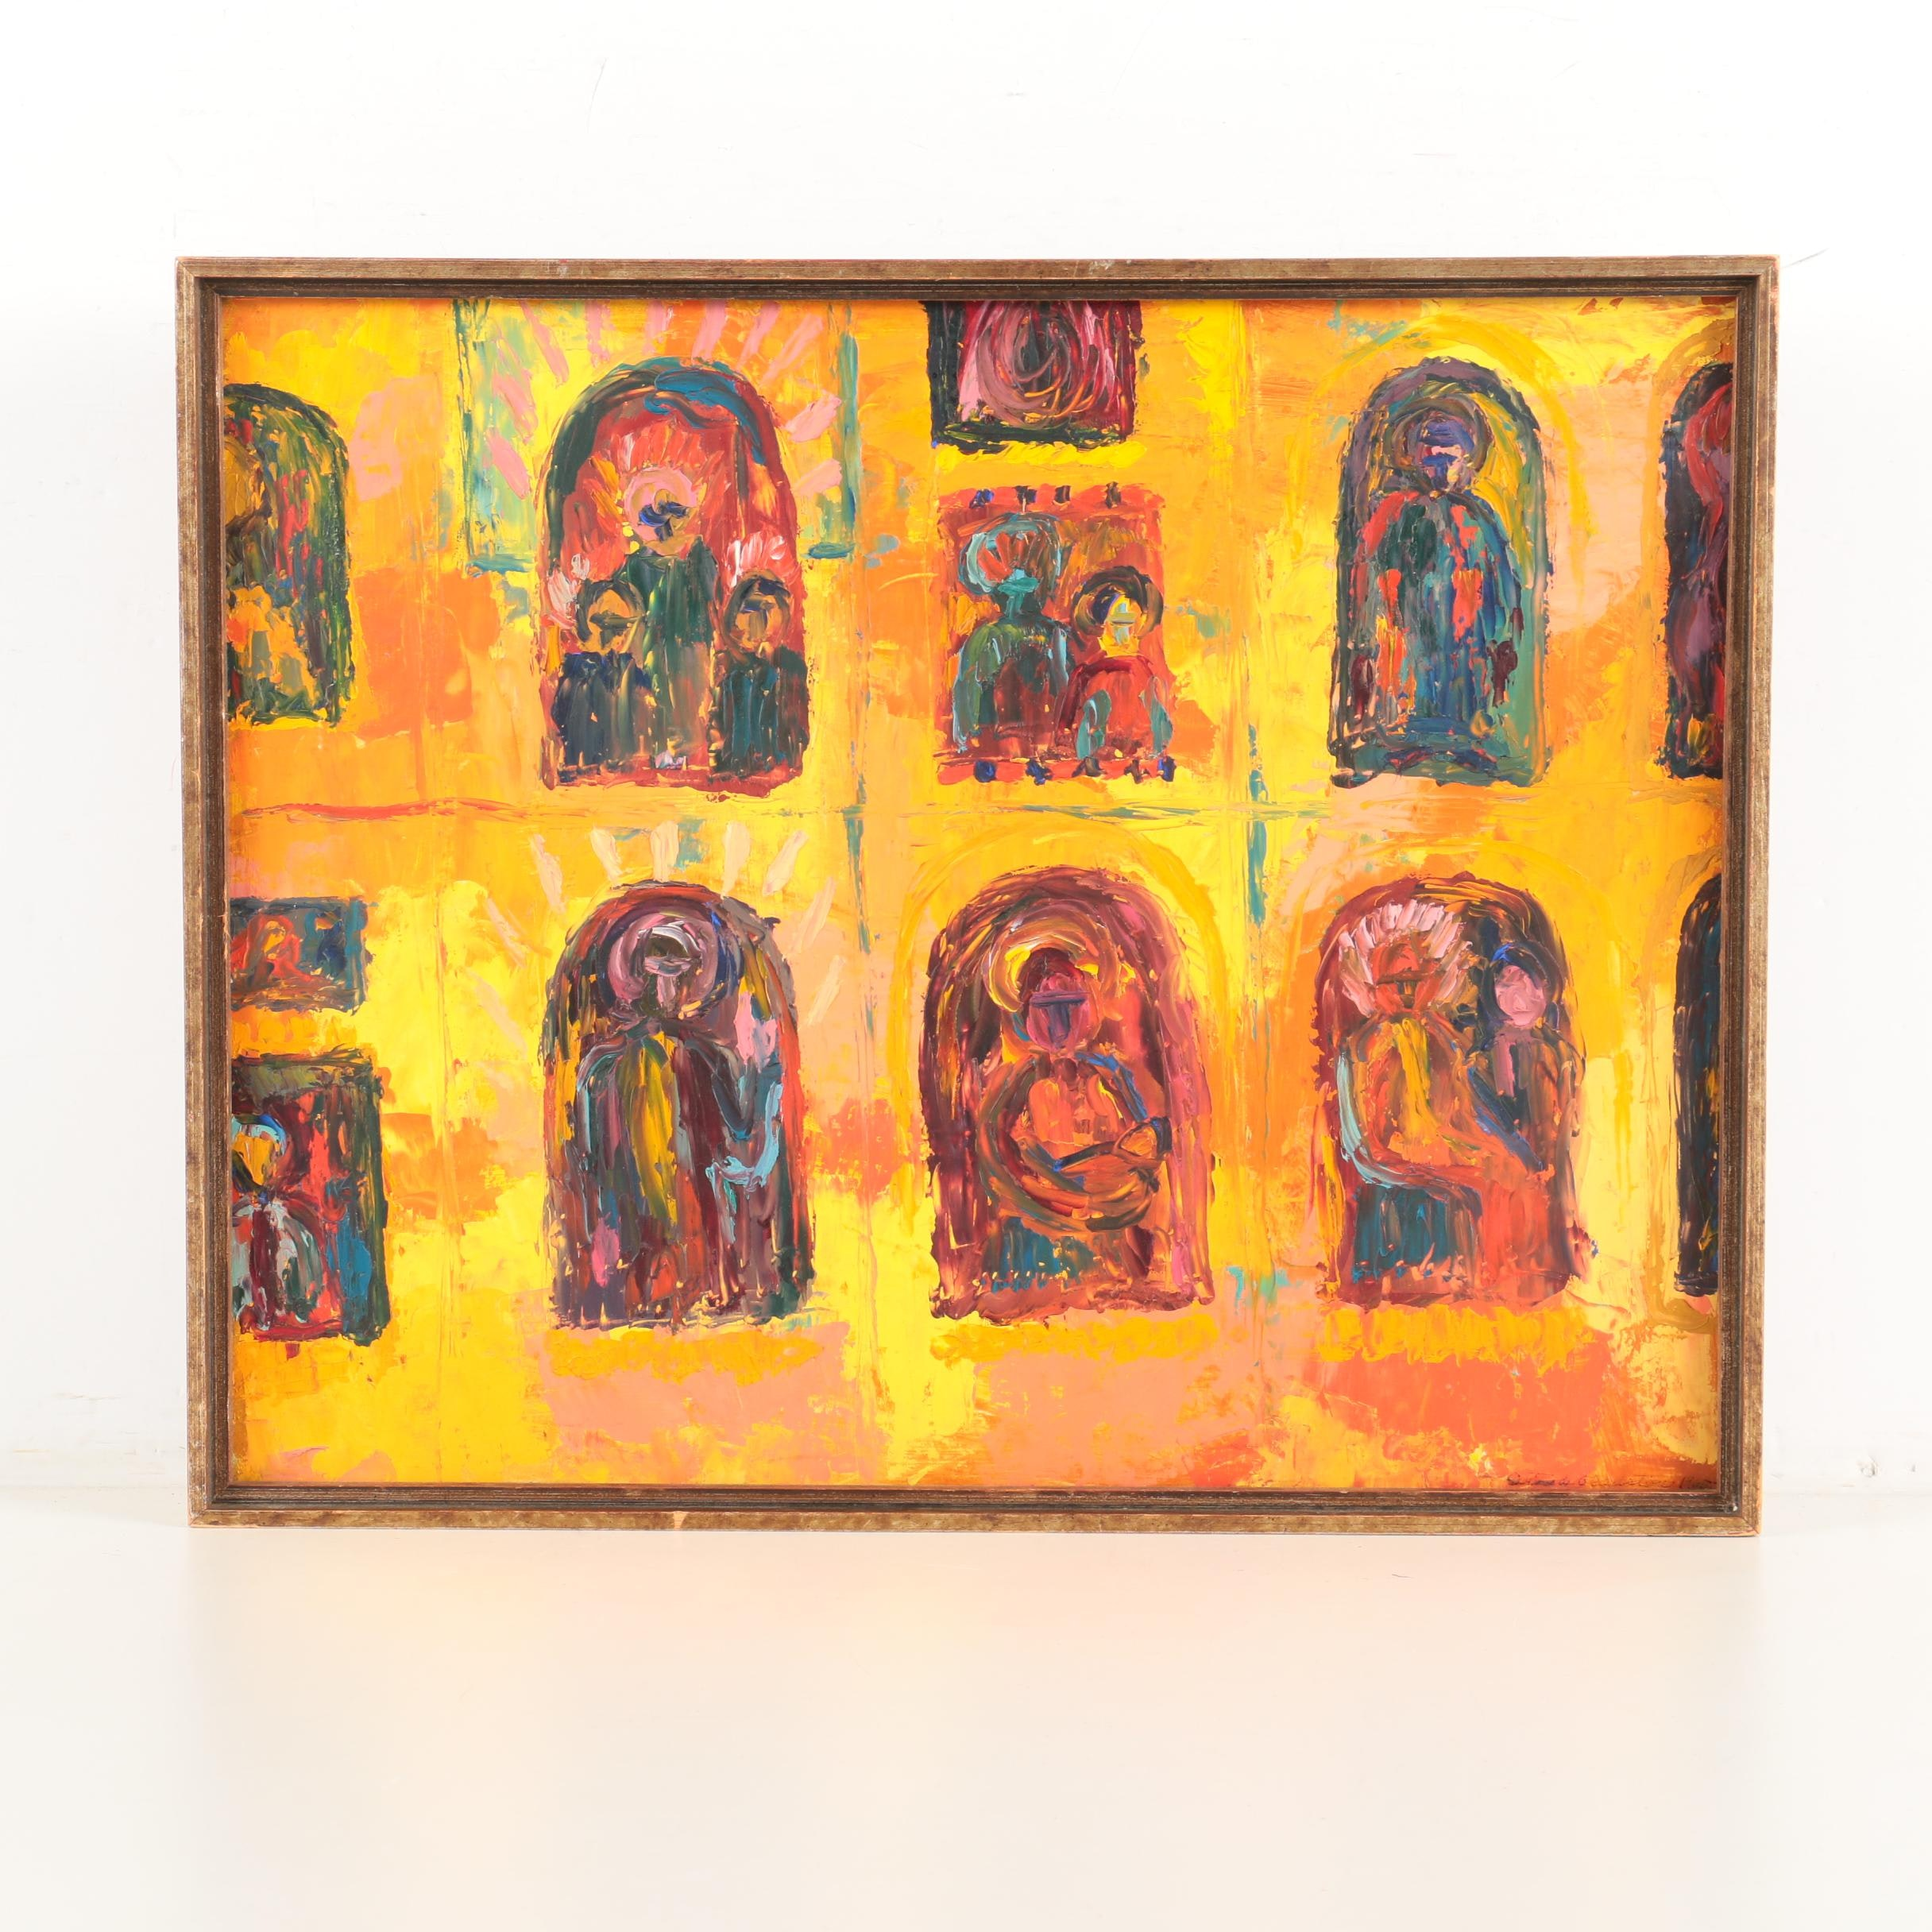 Oil Painting on Board of Abstract Figures in Windows